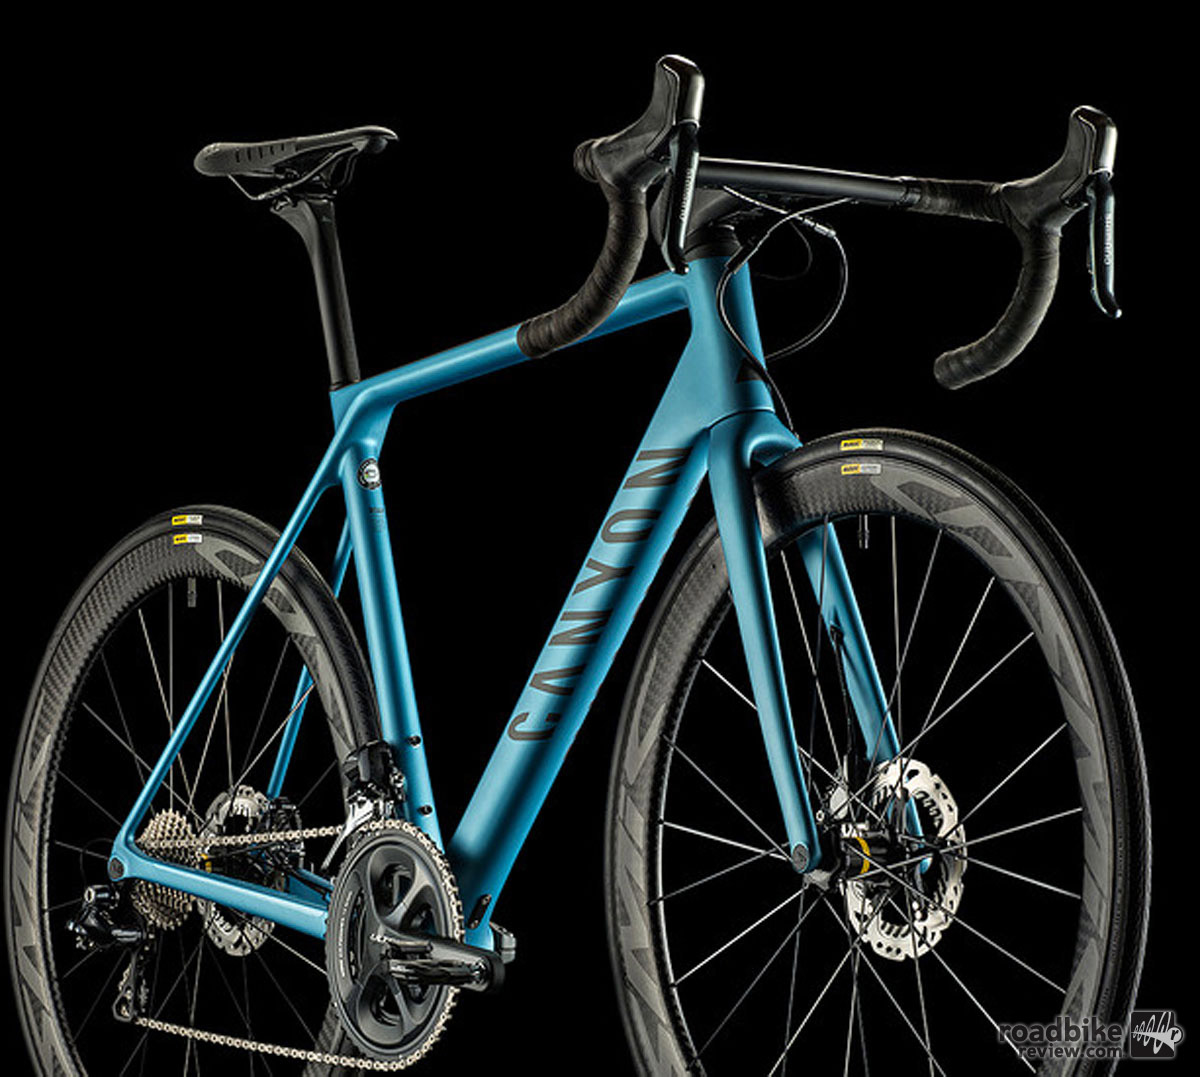 The disc- equipped bikes are claimed to weigh just 70 grams more than their rim brake-equipped counterparts.